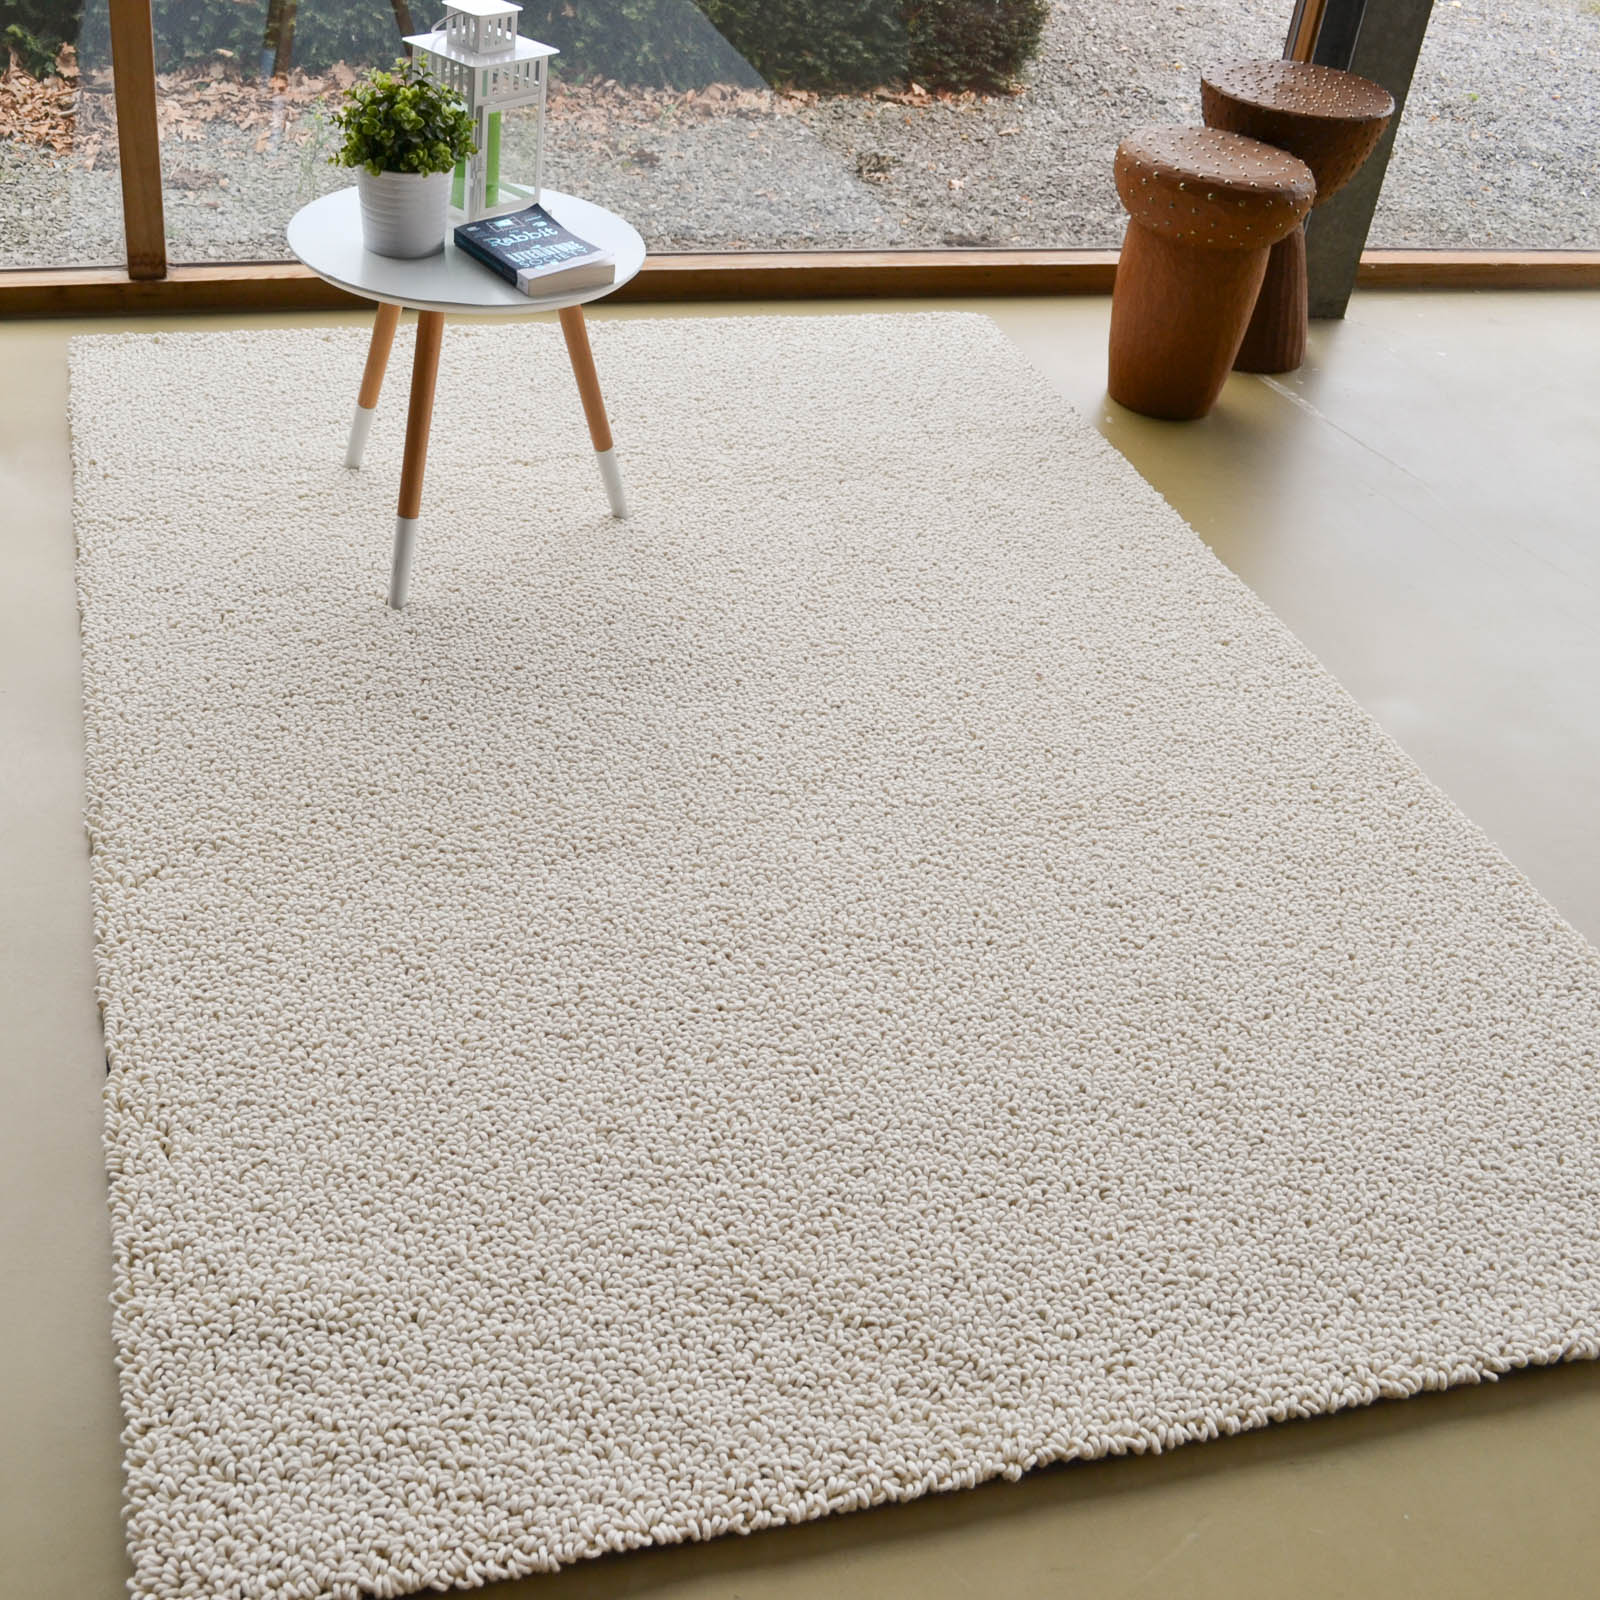 Gravel Boucle Rugs 68109 in Ivory by Brink and Campman